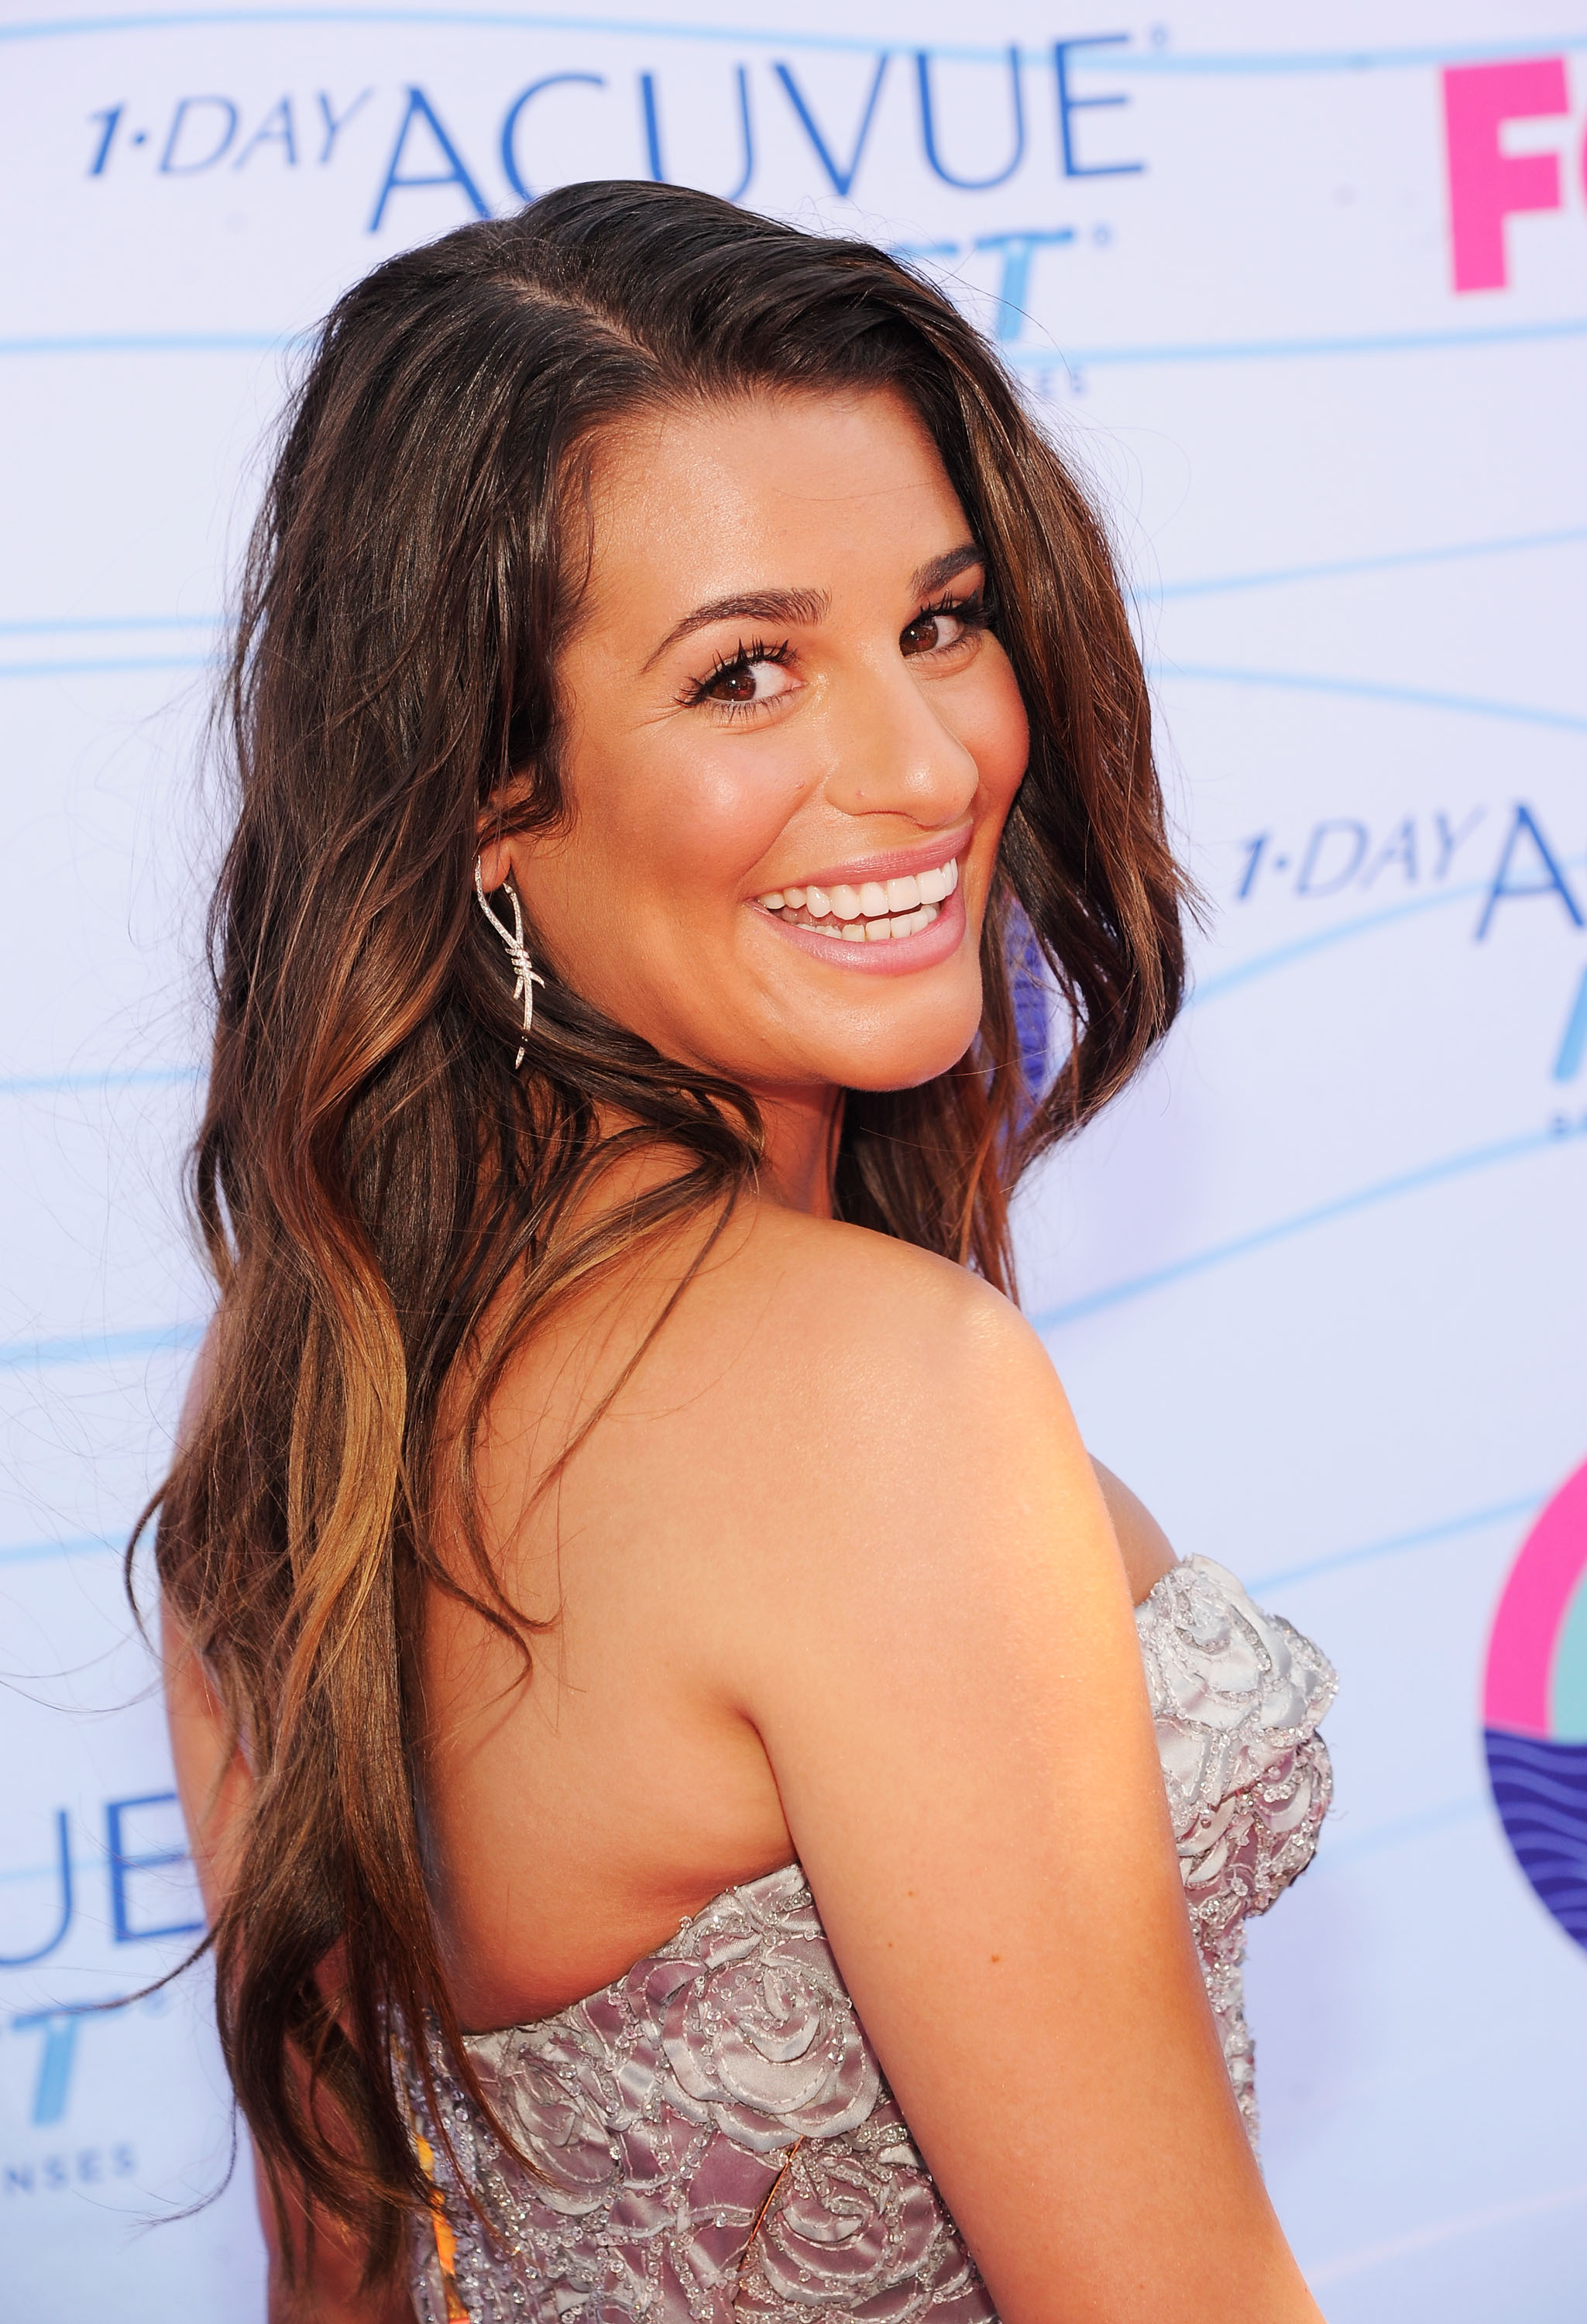 Lea Michele looked happy at the Teen Choice Awards.